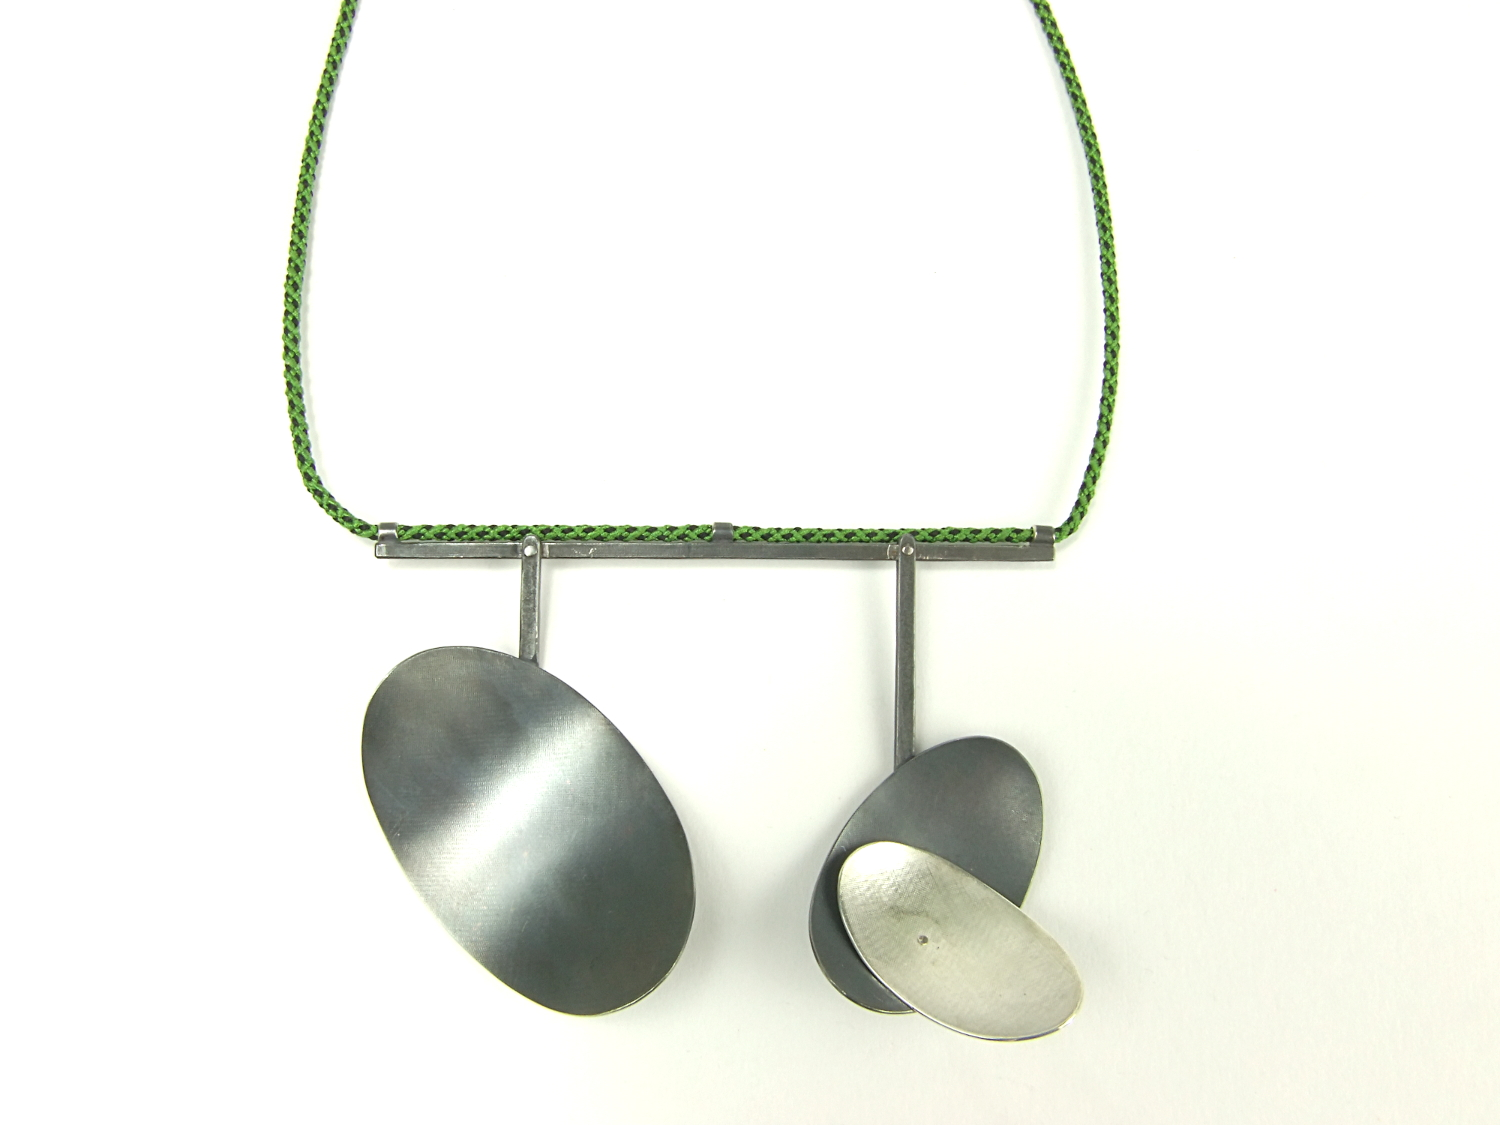 Detail of the oval Argentium silver pendants.